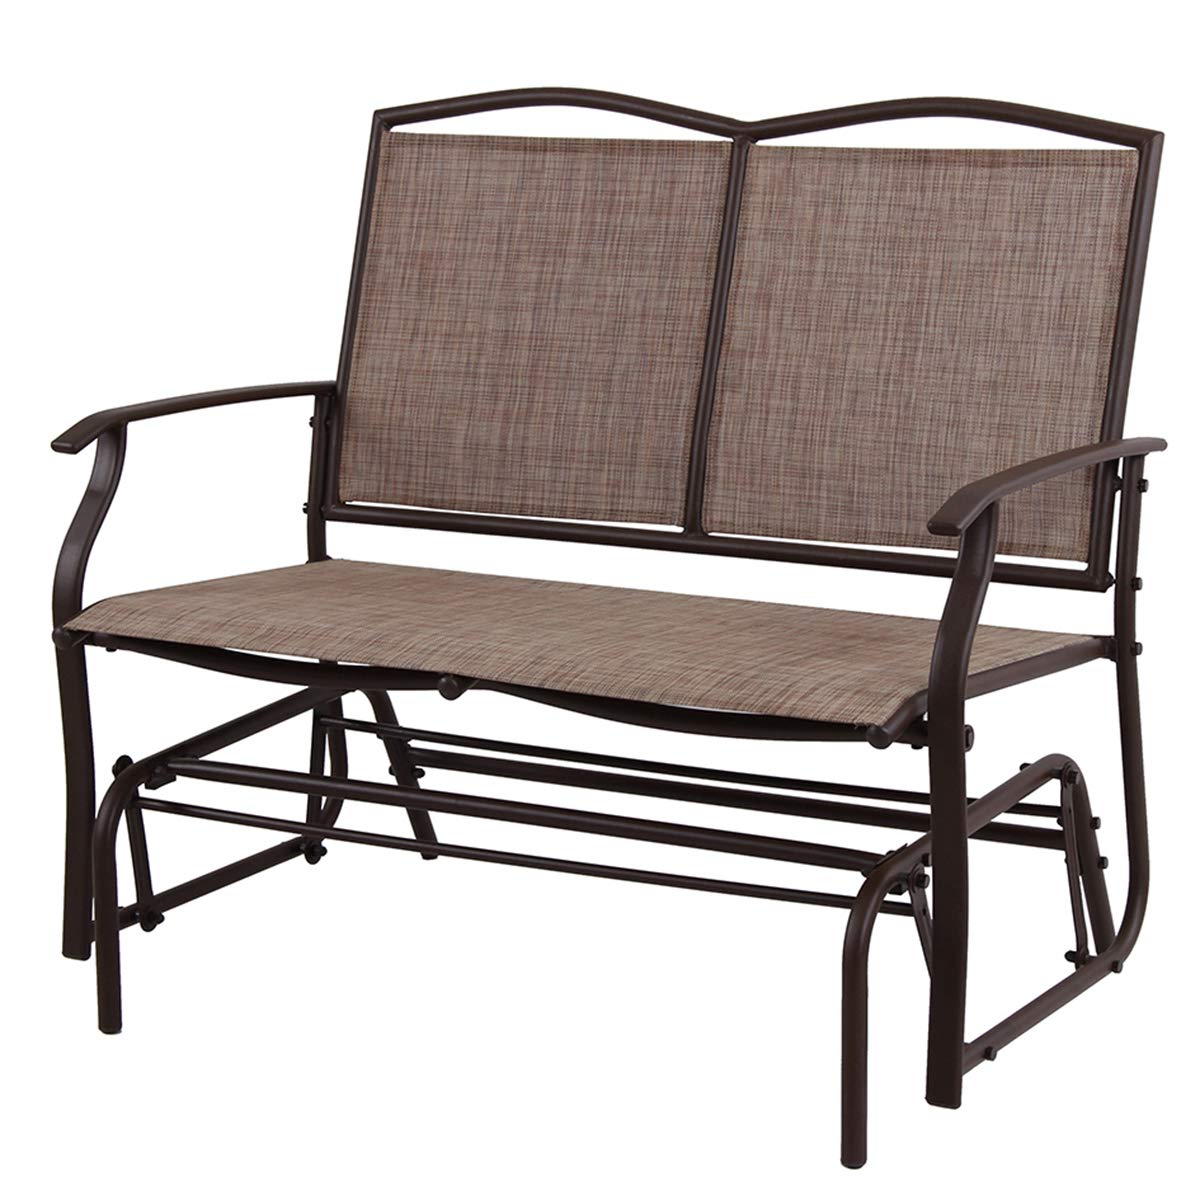 Phi Villa Patio Swing Glider Bench For 2 Persons Rocking Inside 2019 Loveseat Glider Benches (View 11 of 30)